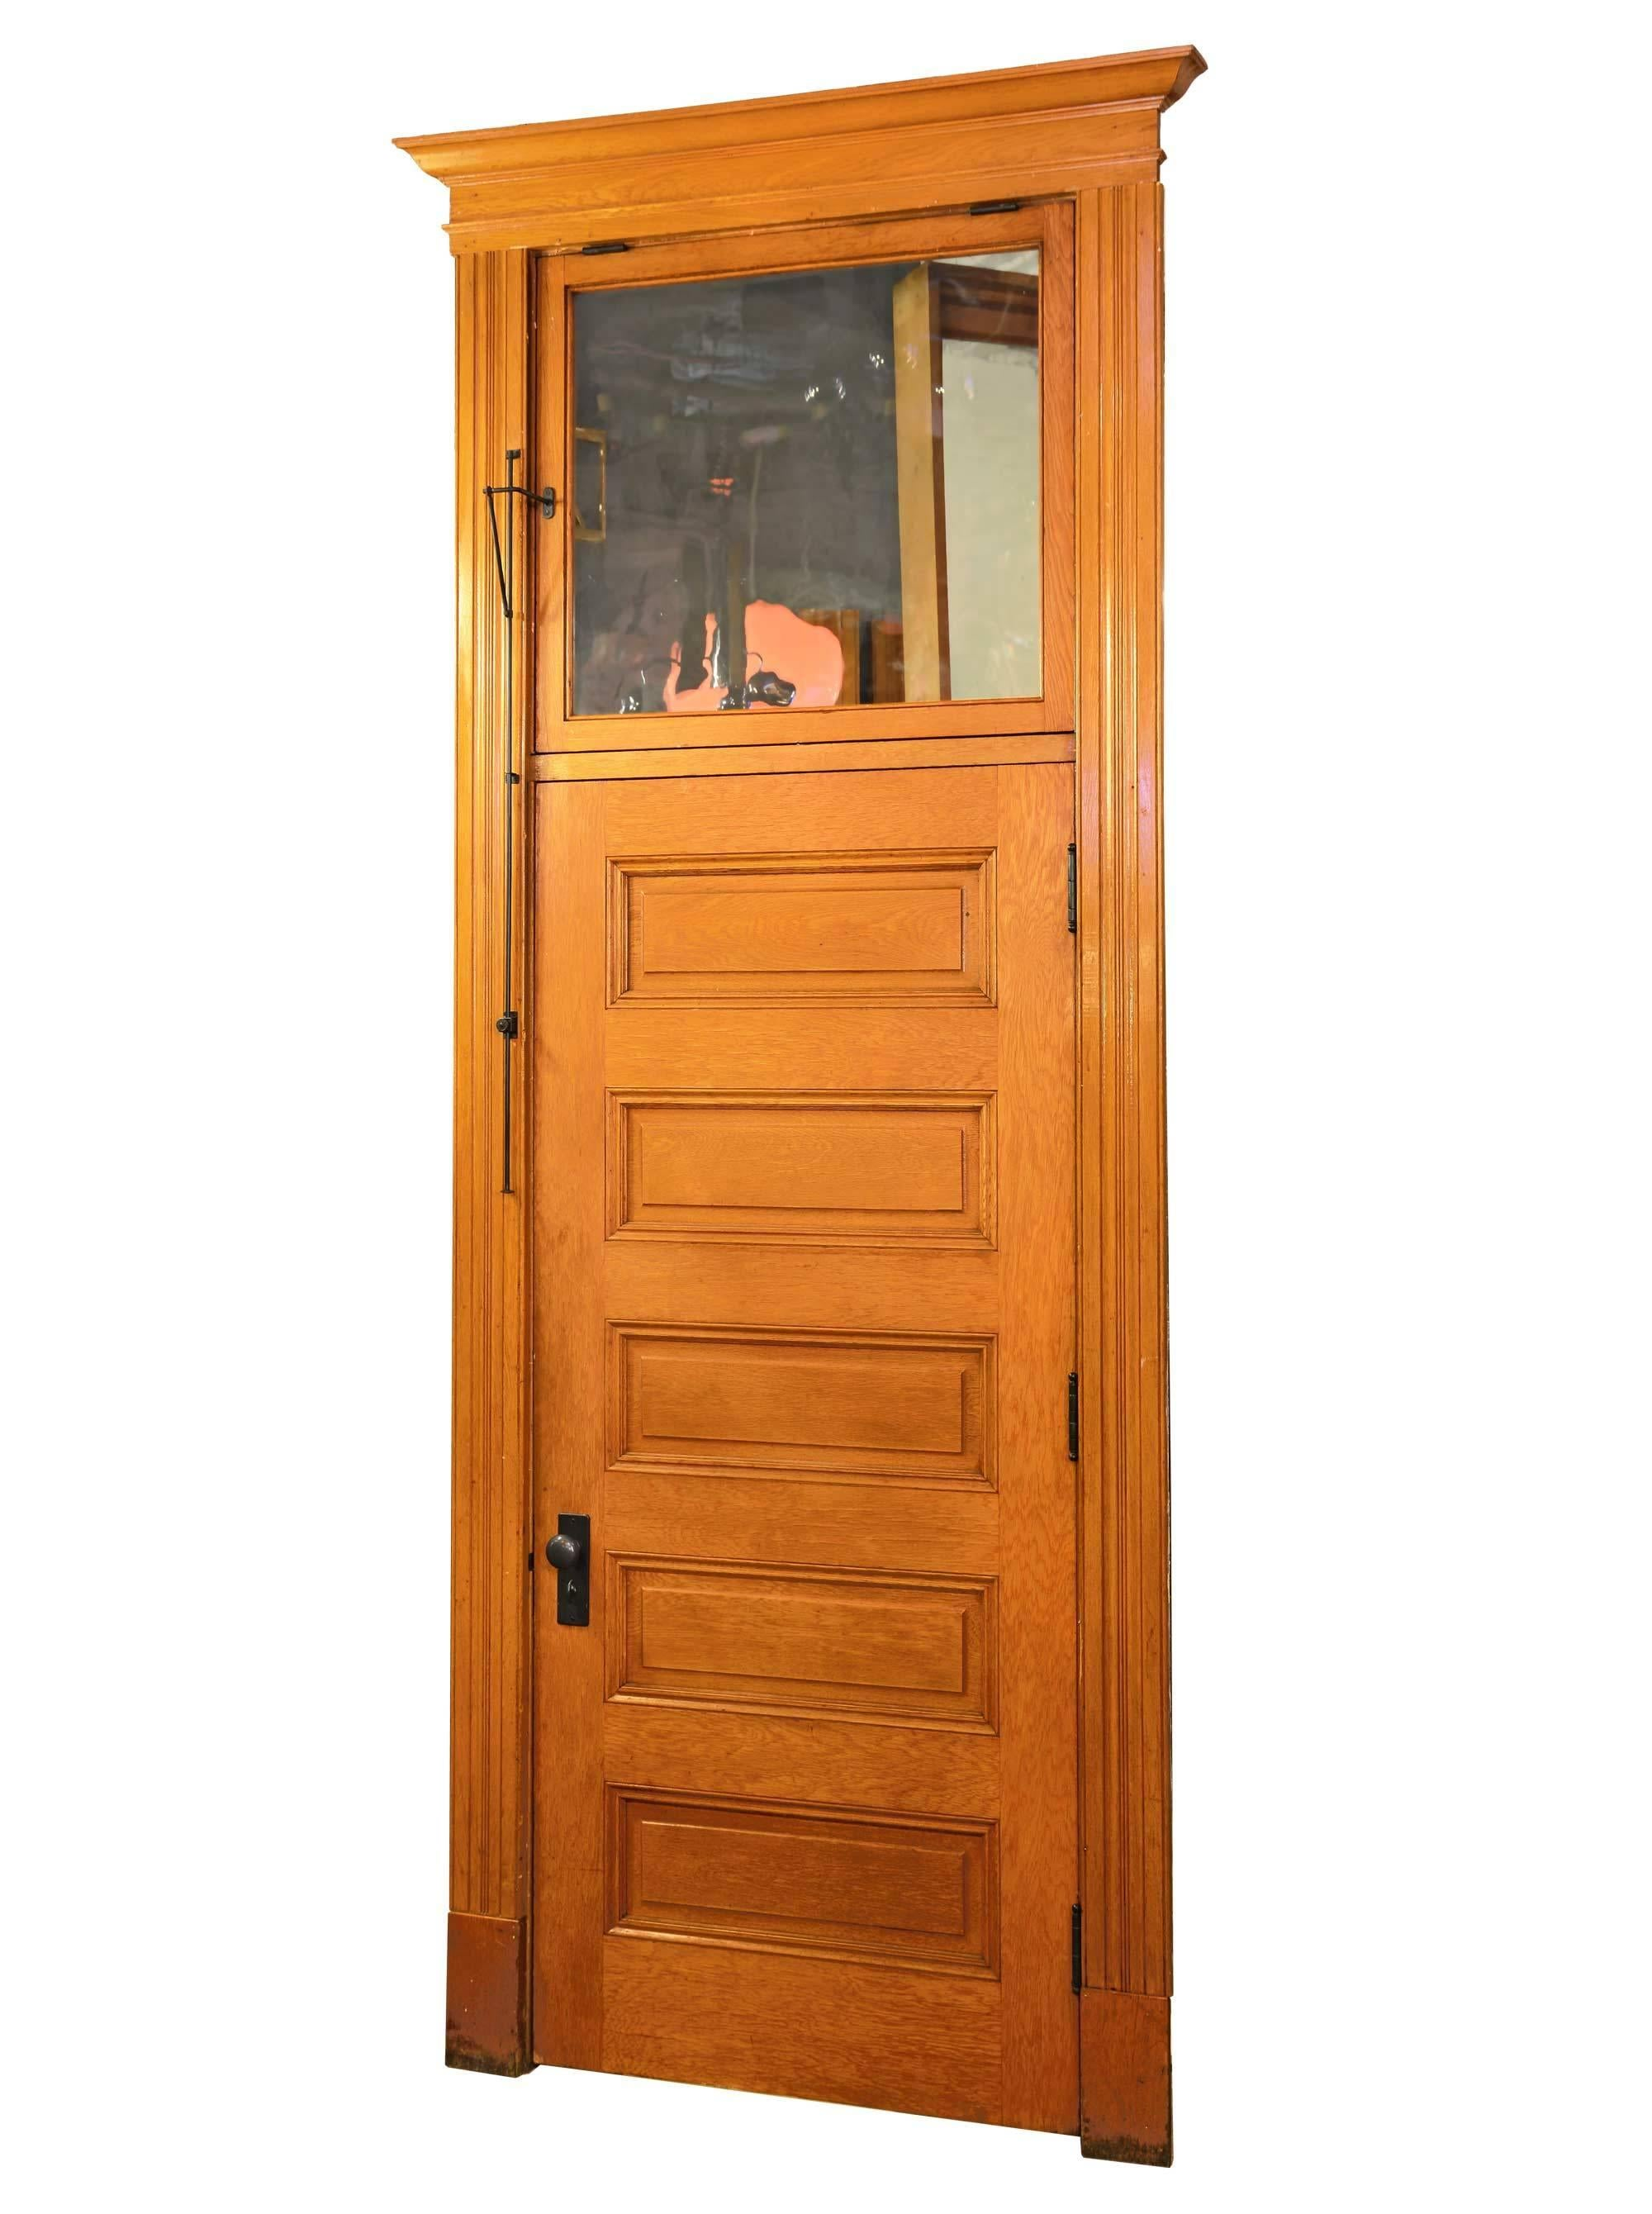 Red Oak Five Panel Doors With Transom Circa 1900 At 1stdibs